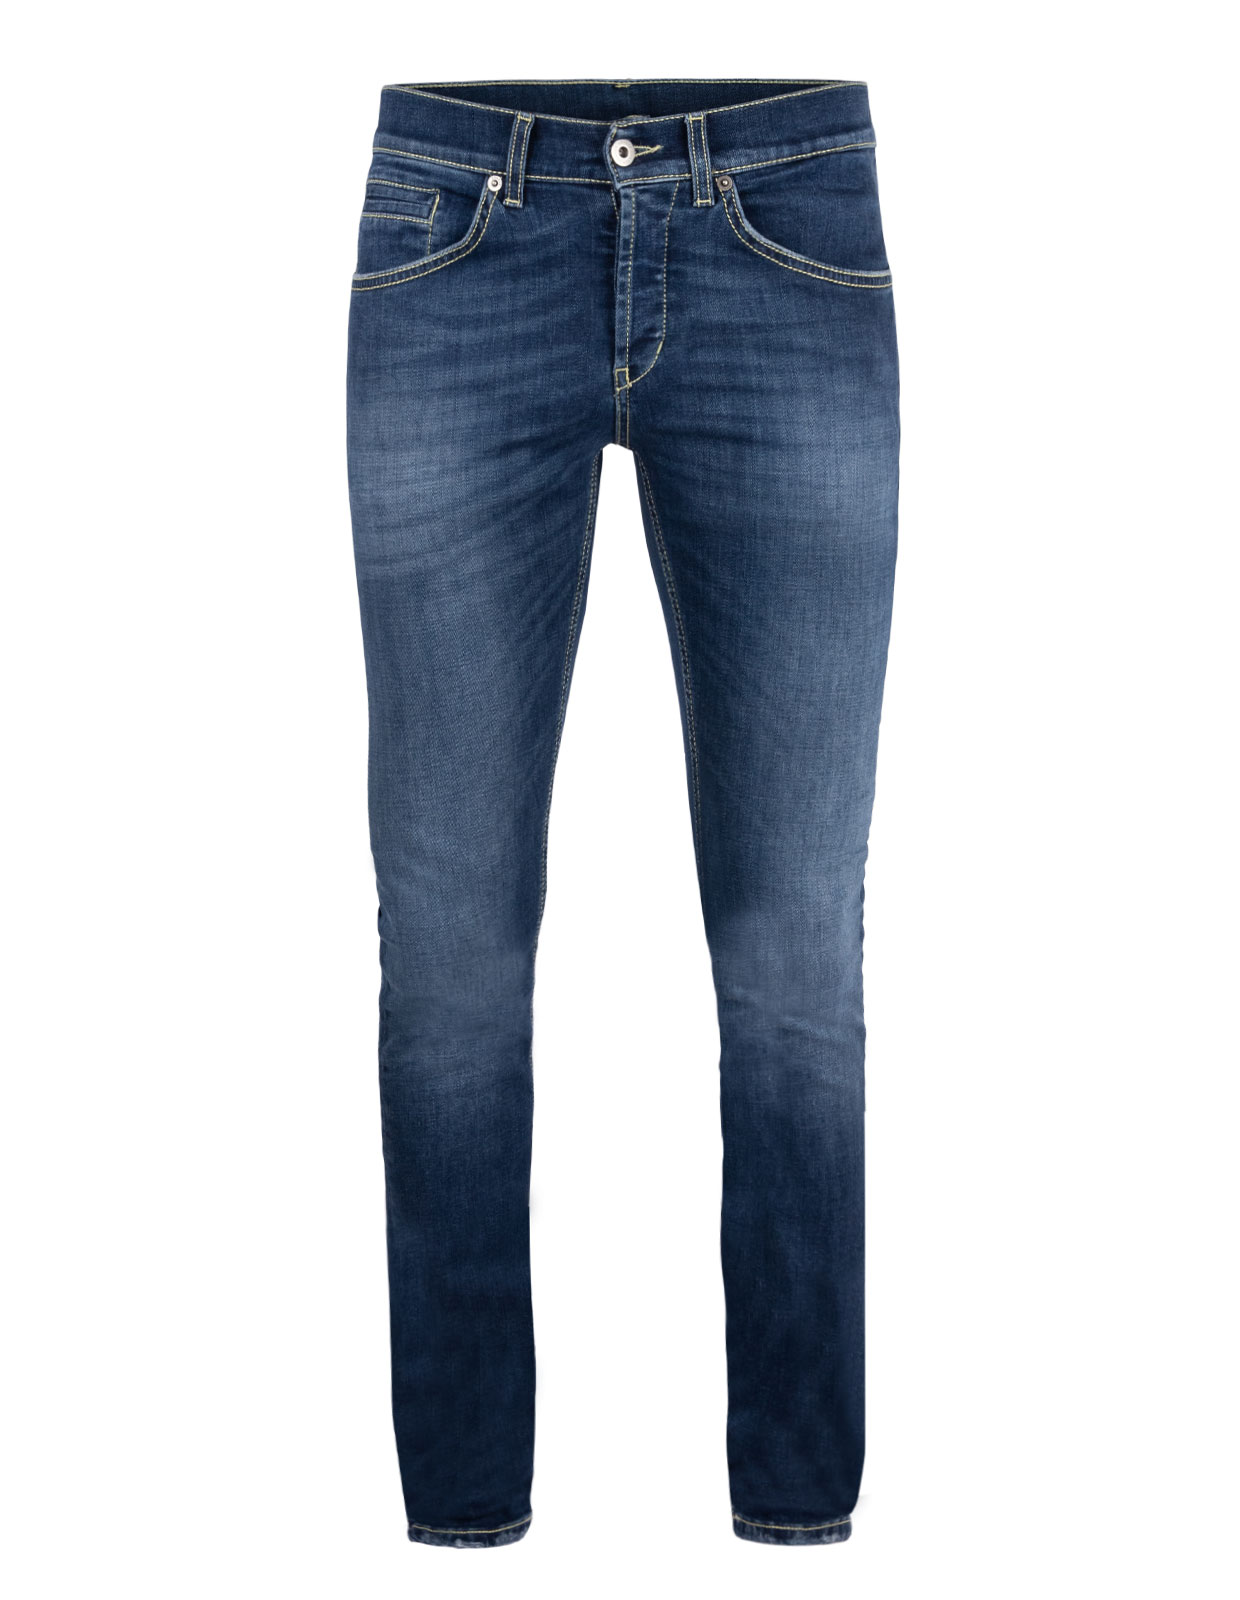 George Skinny Jeans Denim Stretch Mid Blue